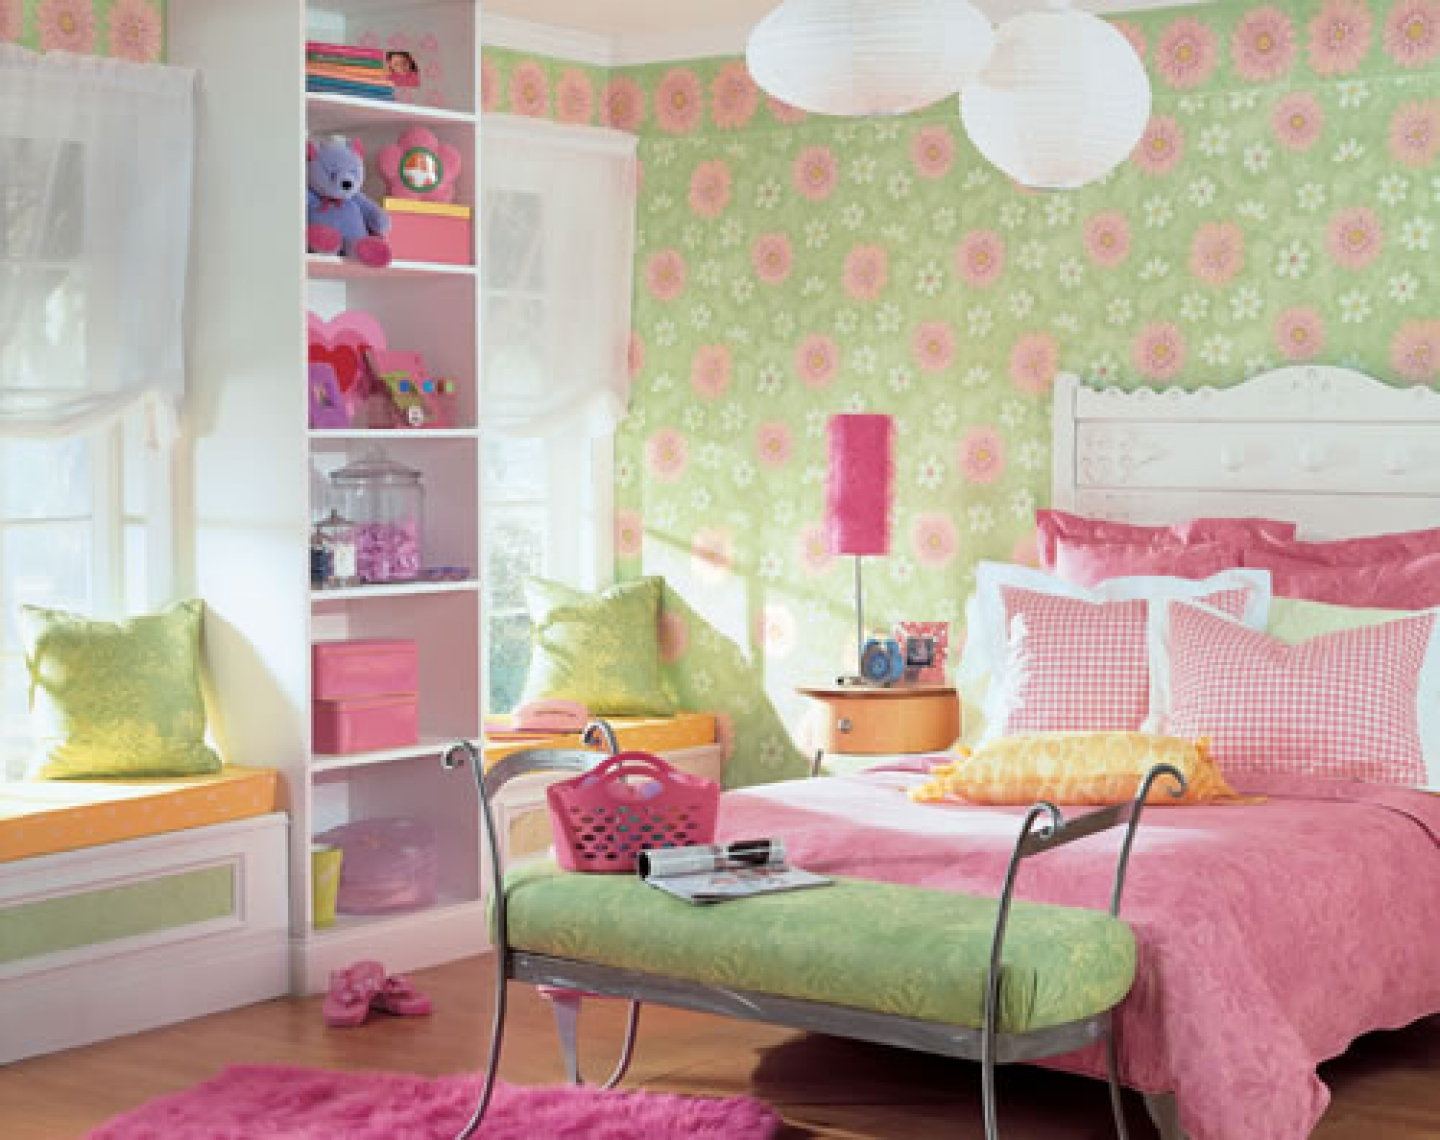 Wallpapers for Girls Bedrooms - WallpaperSafari